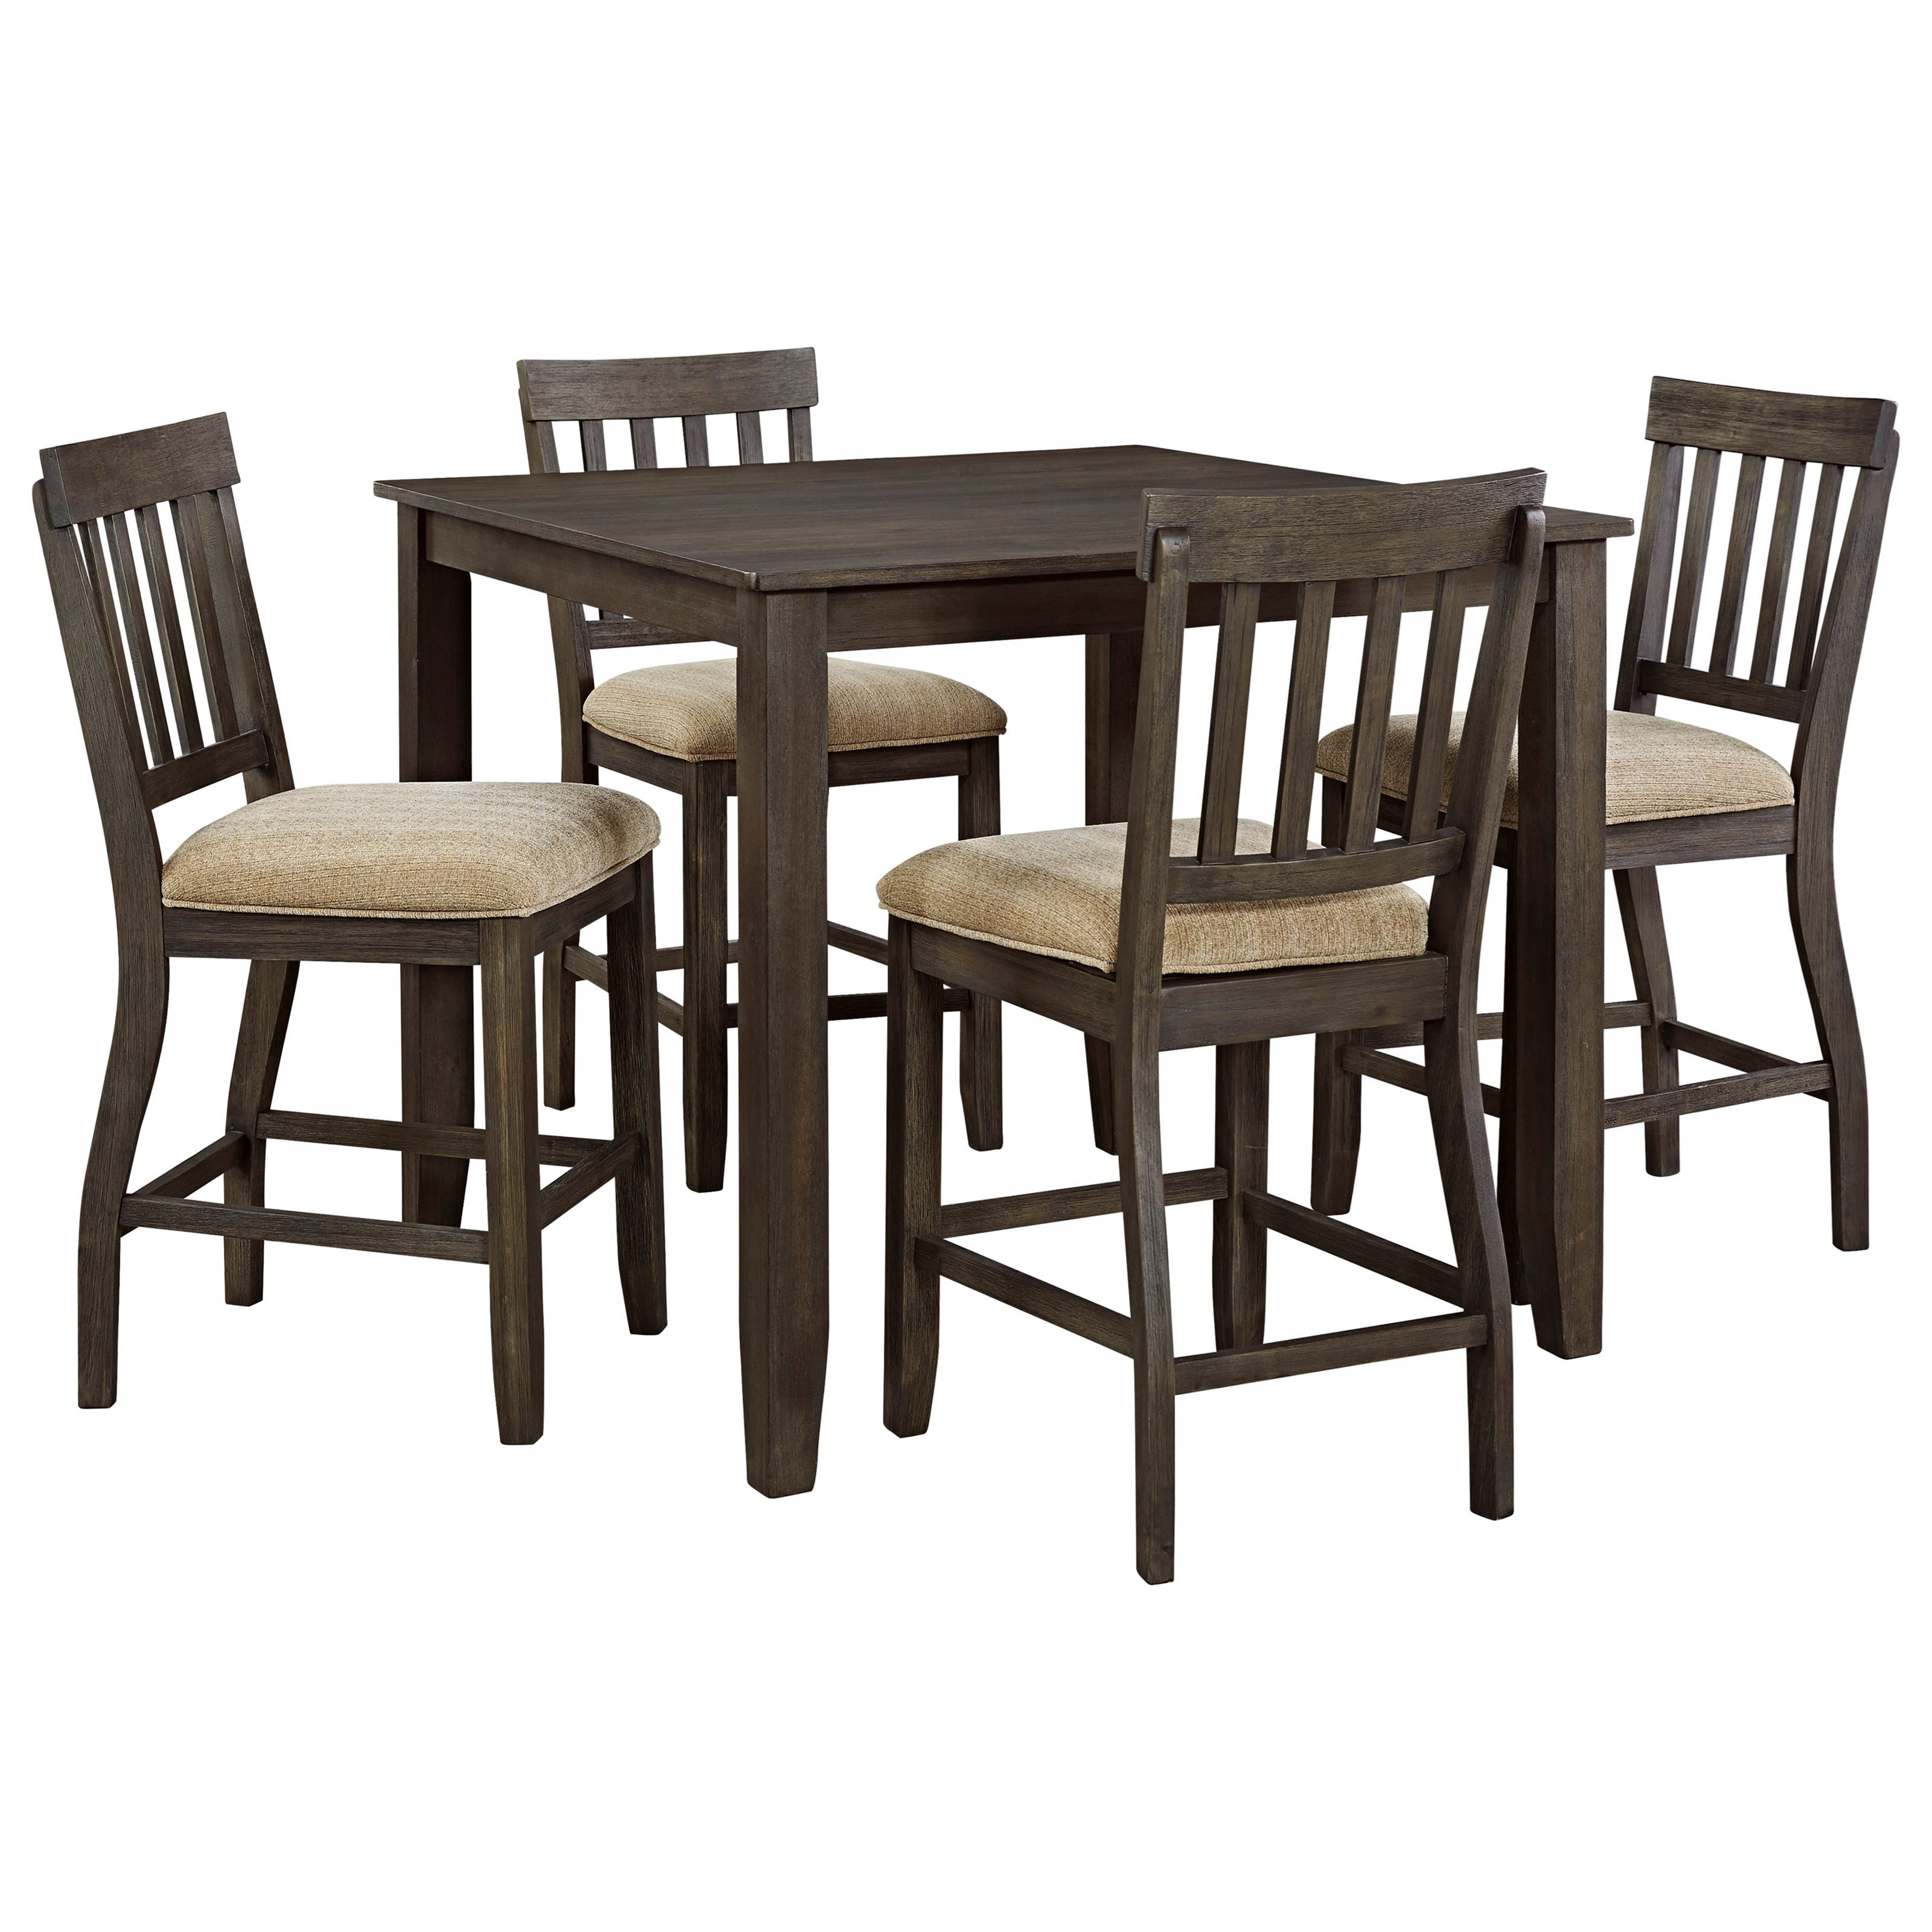 Signature Design by Ashley Dresbar 5-Piece Square Dining Room Counter Table Set - Item Number: D485-13+4x124